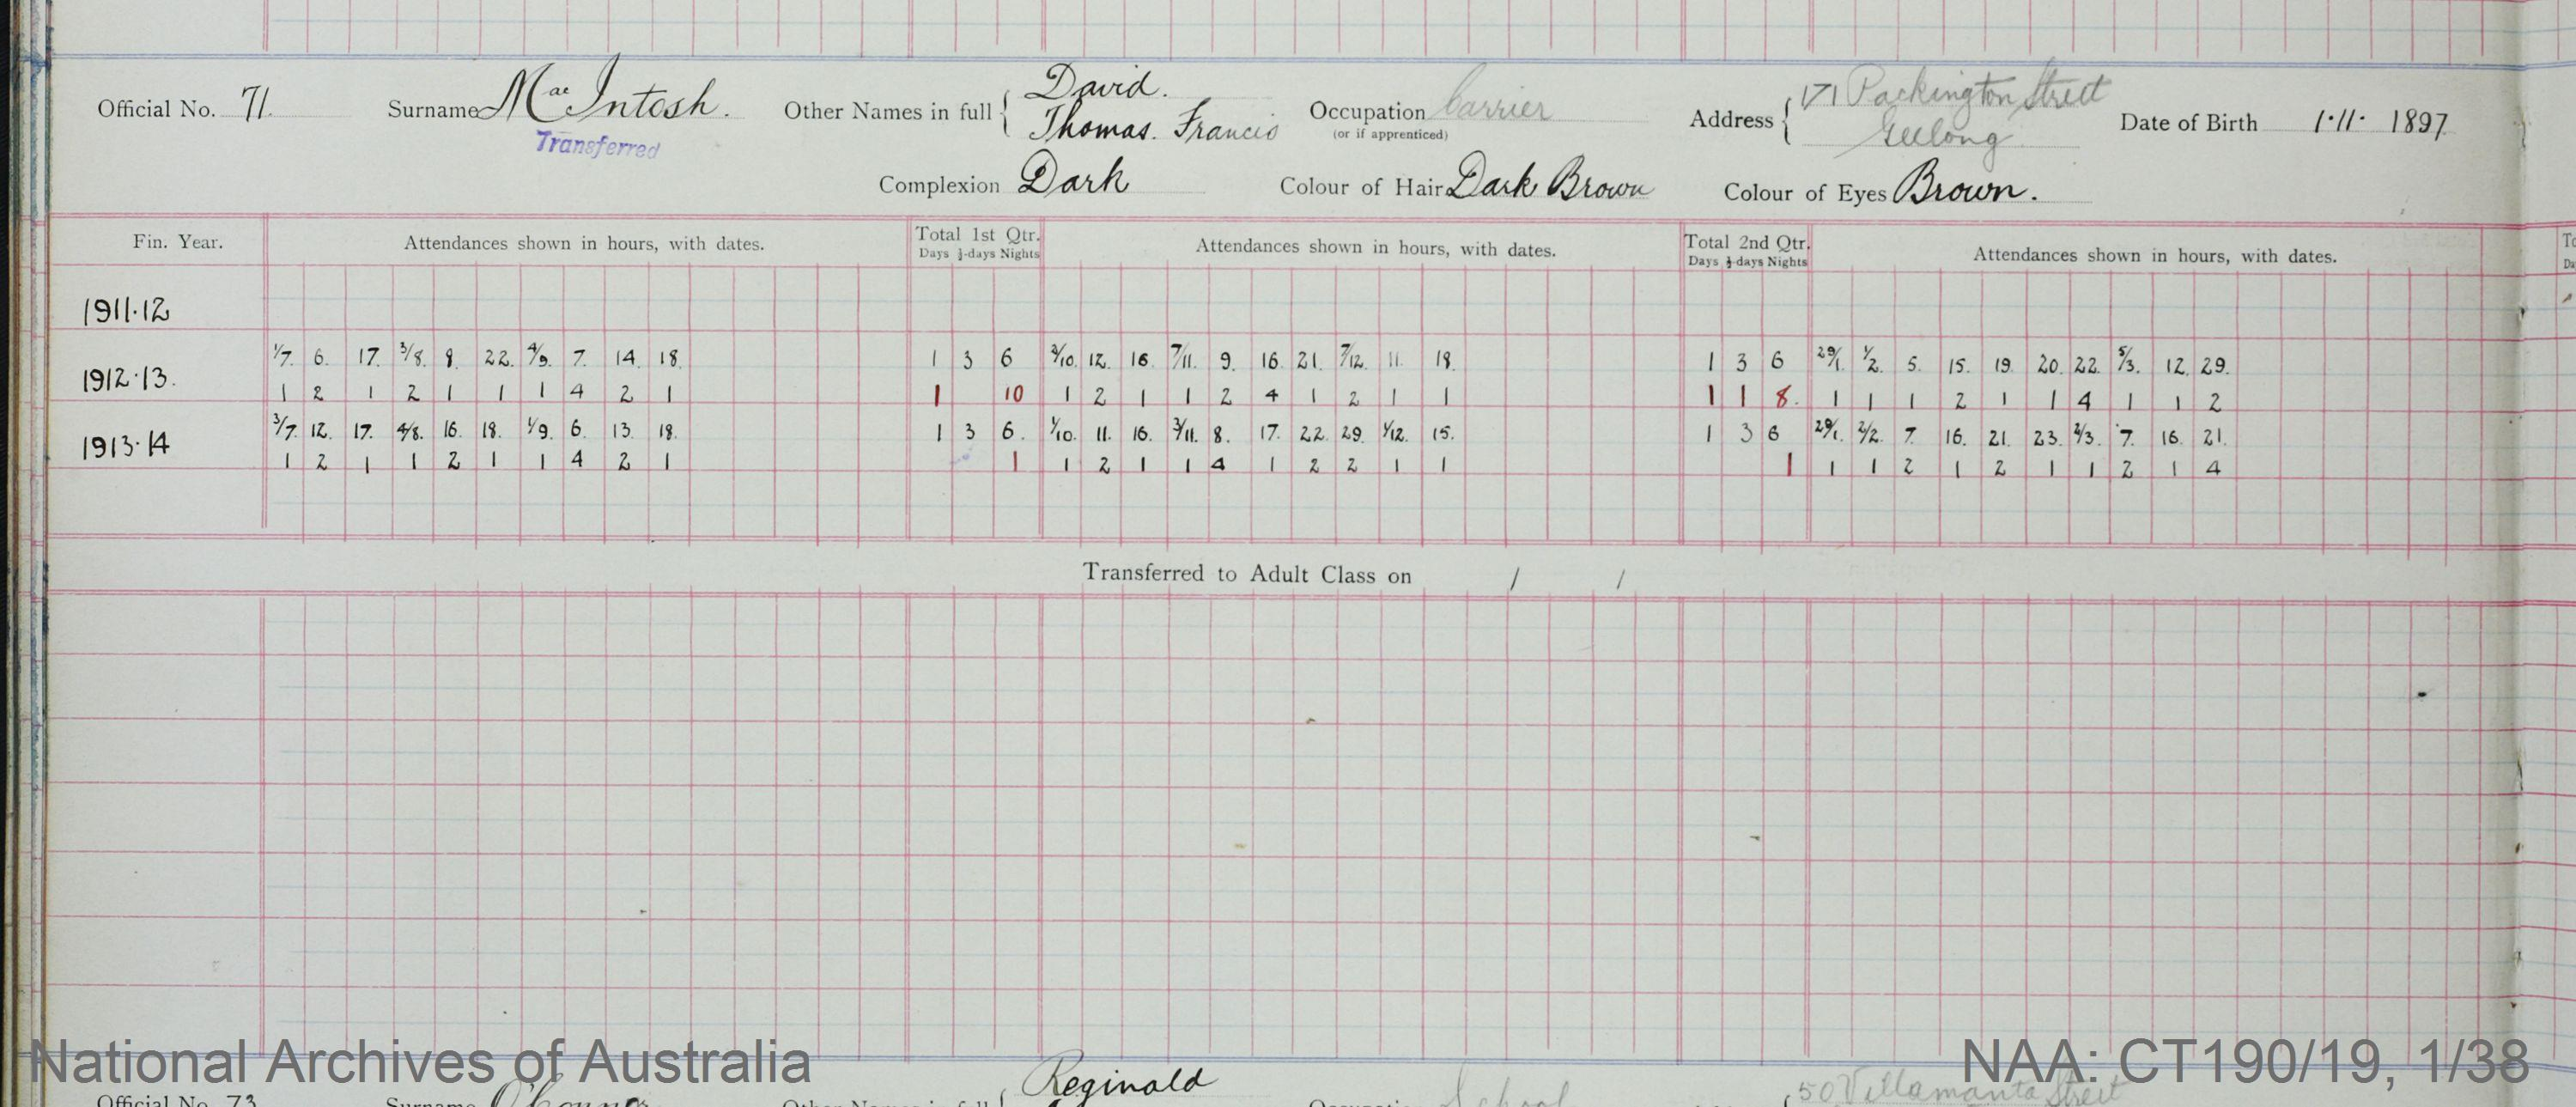 SURNAME - MacINTOSH;  GIVEN NAME(S) - David Thomas Francis;  OFFICIAL NUMBER - 71;  DATE OF BIRTH - 1 November 1897;  PLACE OF BIRTH - [Unknown];  NEXT OF KIN - [Unknown] ;  SERVICE/STATION - Geelong;  REGISTRATION DATE - 31 January 1911